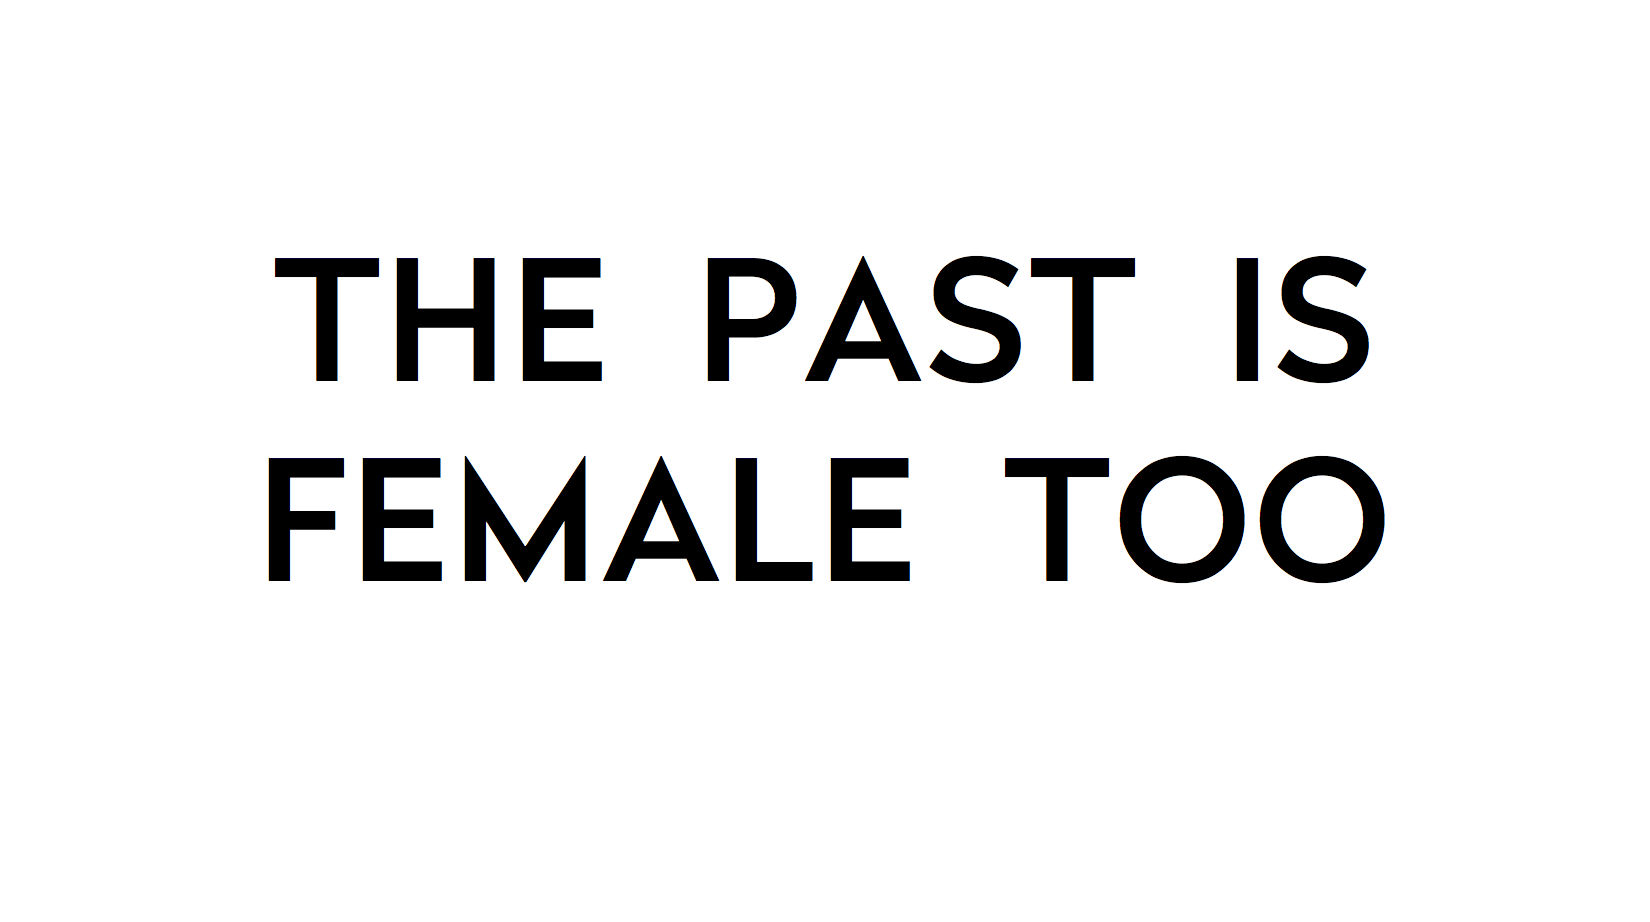 """THE PAST IS FEMALE TOO   is a campaign I developed for Sistory.co to highlight women's contributions, often overlooked,to the historical record. A series of posts accompanied the distribution of t-shirts modeled after the popular ones boasting the slogan, """"THE FUTURE IS FEMALE."""""""